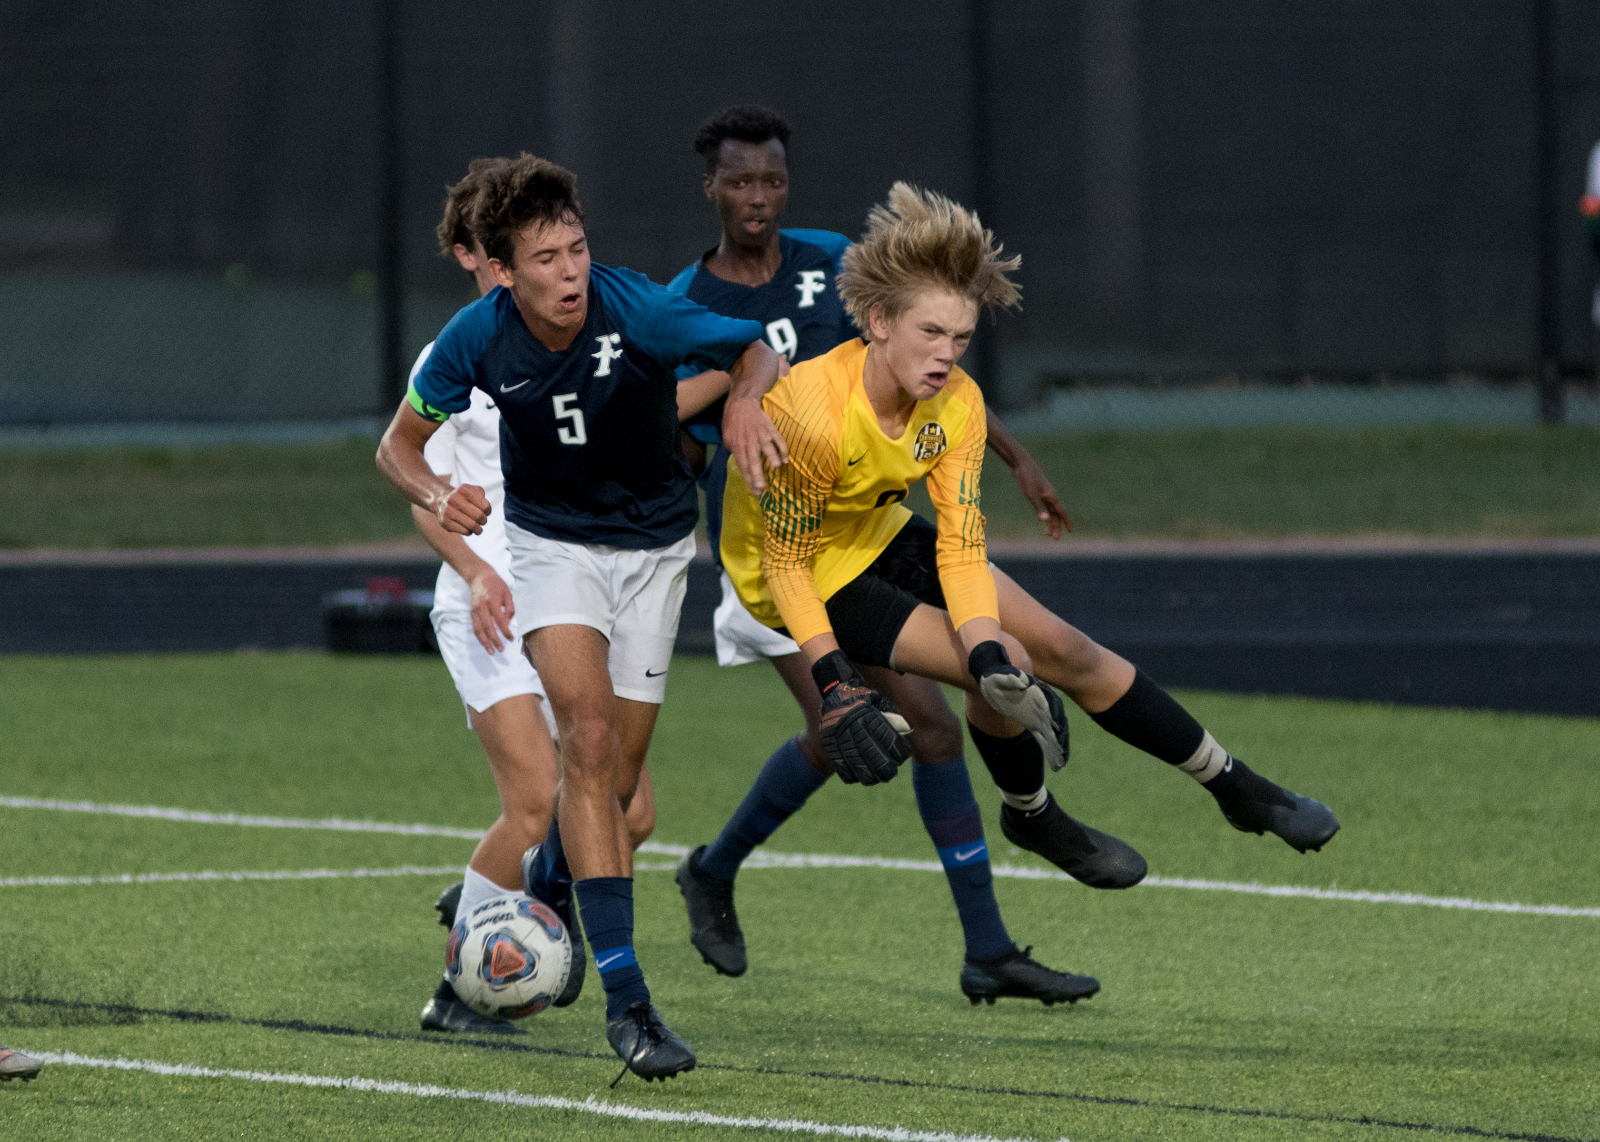 Photo Highlights from Fairmont Men's Varsity Soccer vs Centerville 9-8-2020